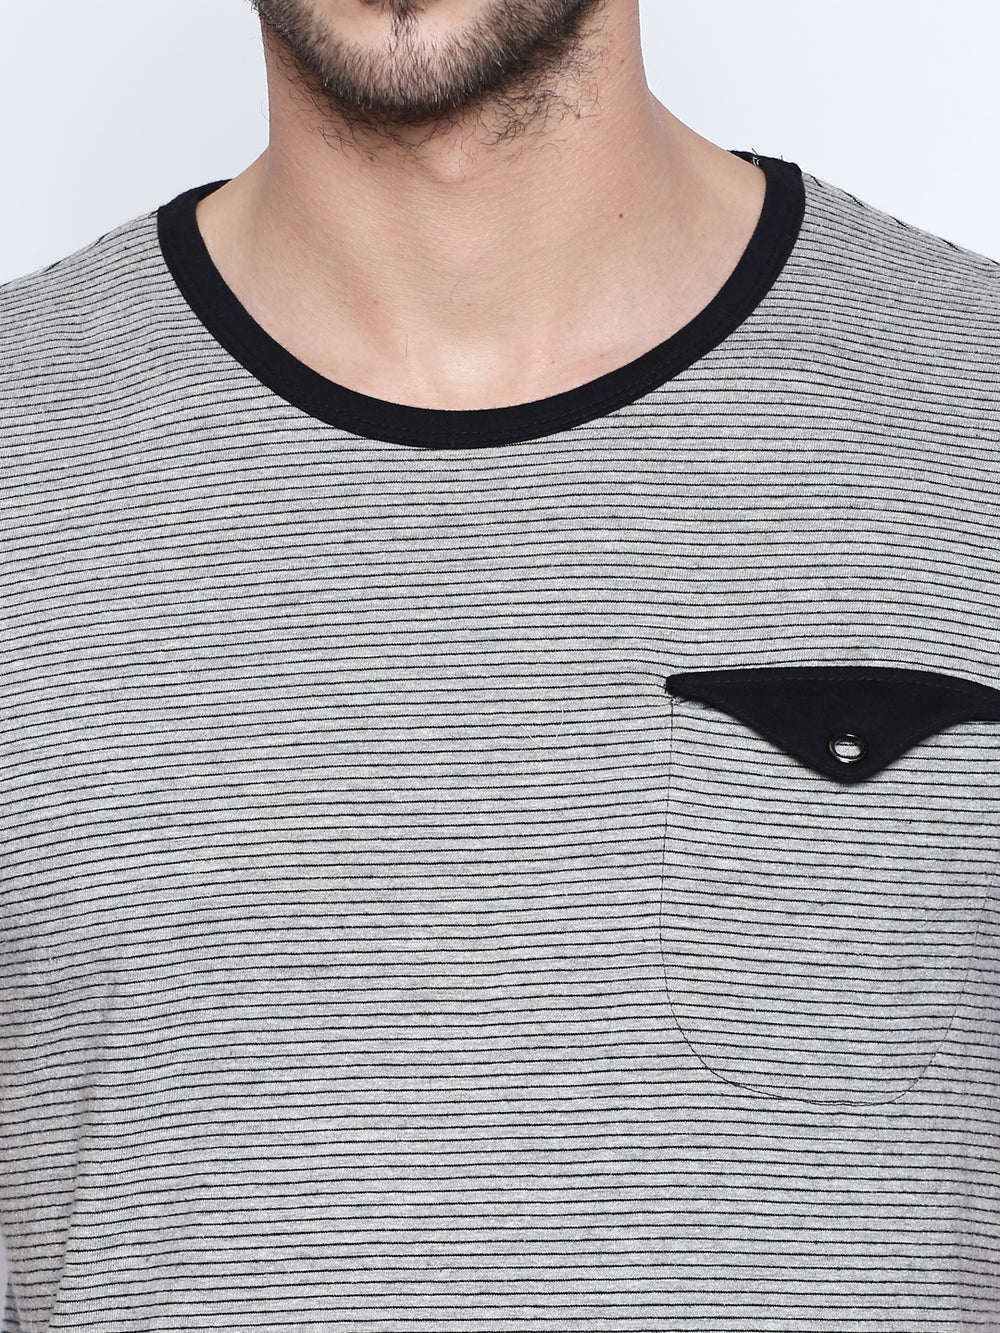 Grey Melange Striped Cotton Half Sleeve T-Shirt